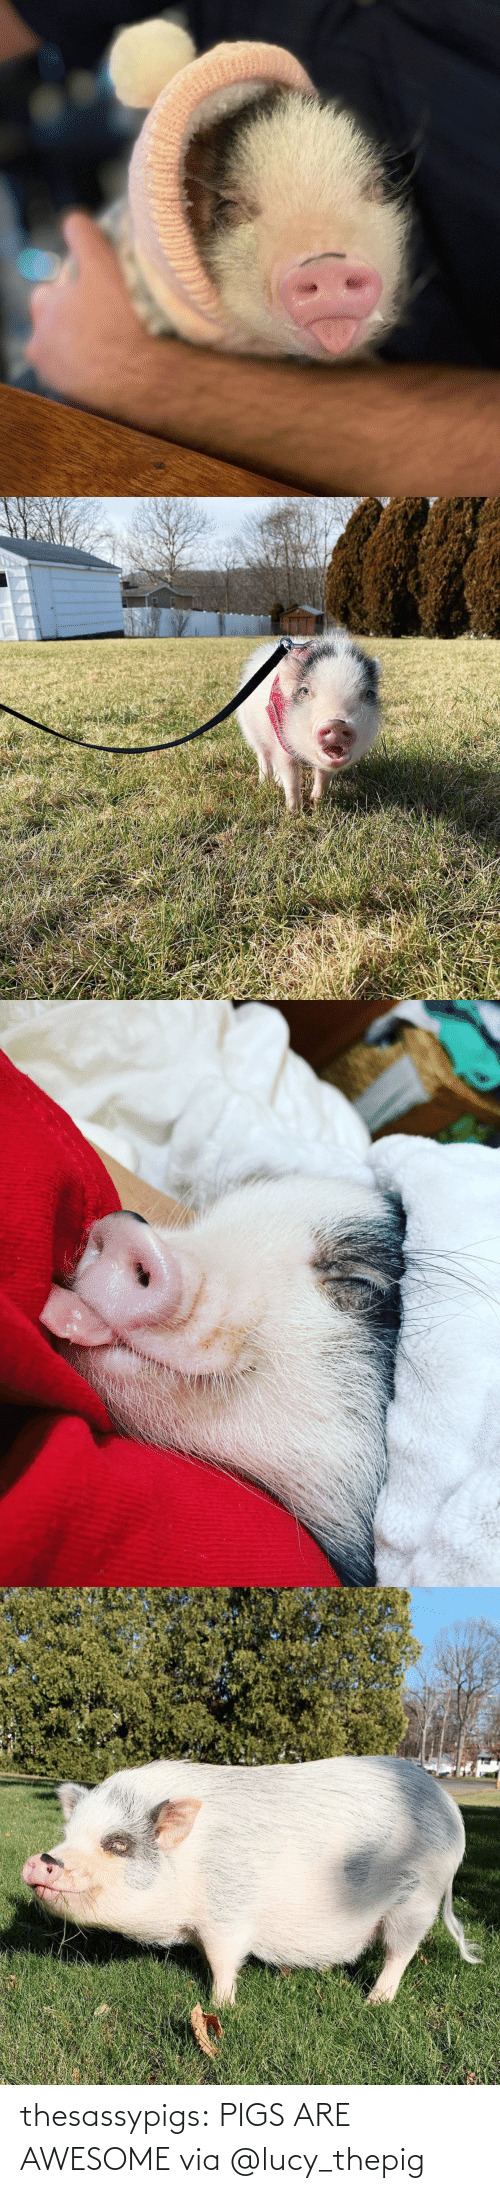 Awesome: thesassypigs: PIGS ARE AWESOME via @lucy_thepig